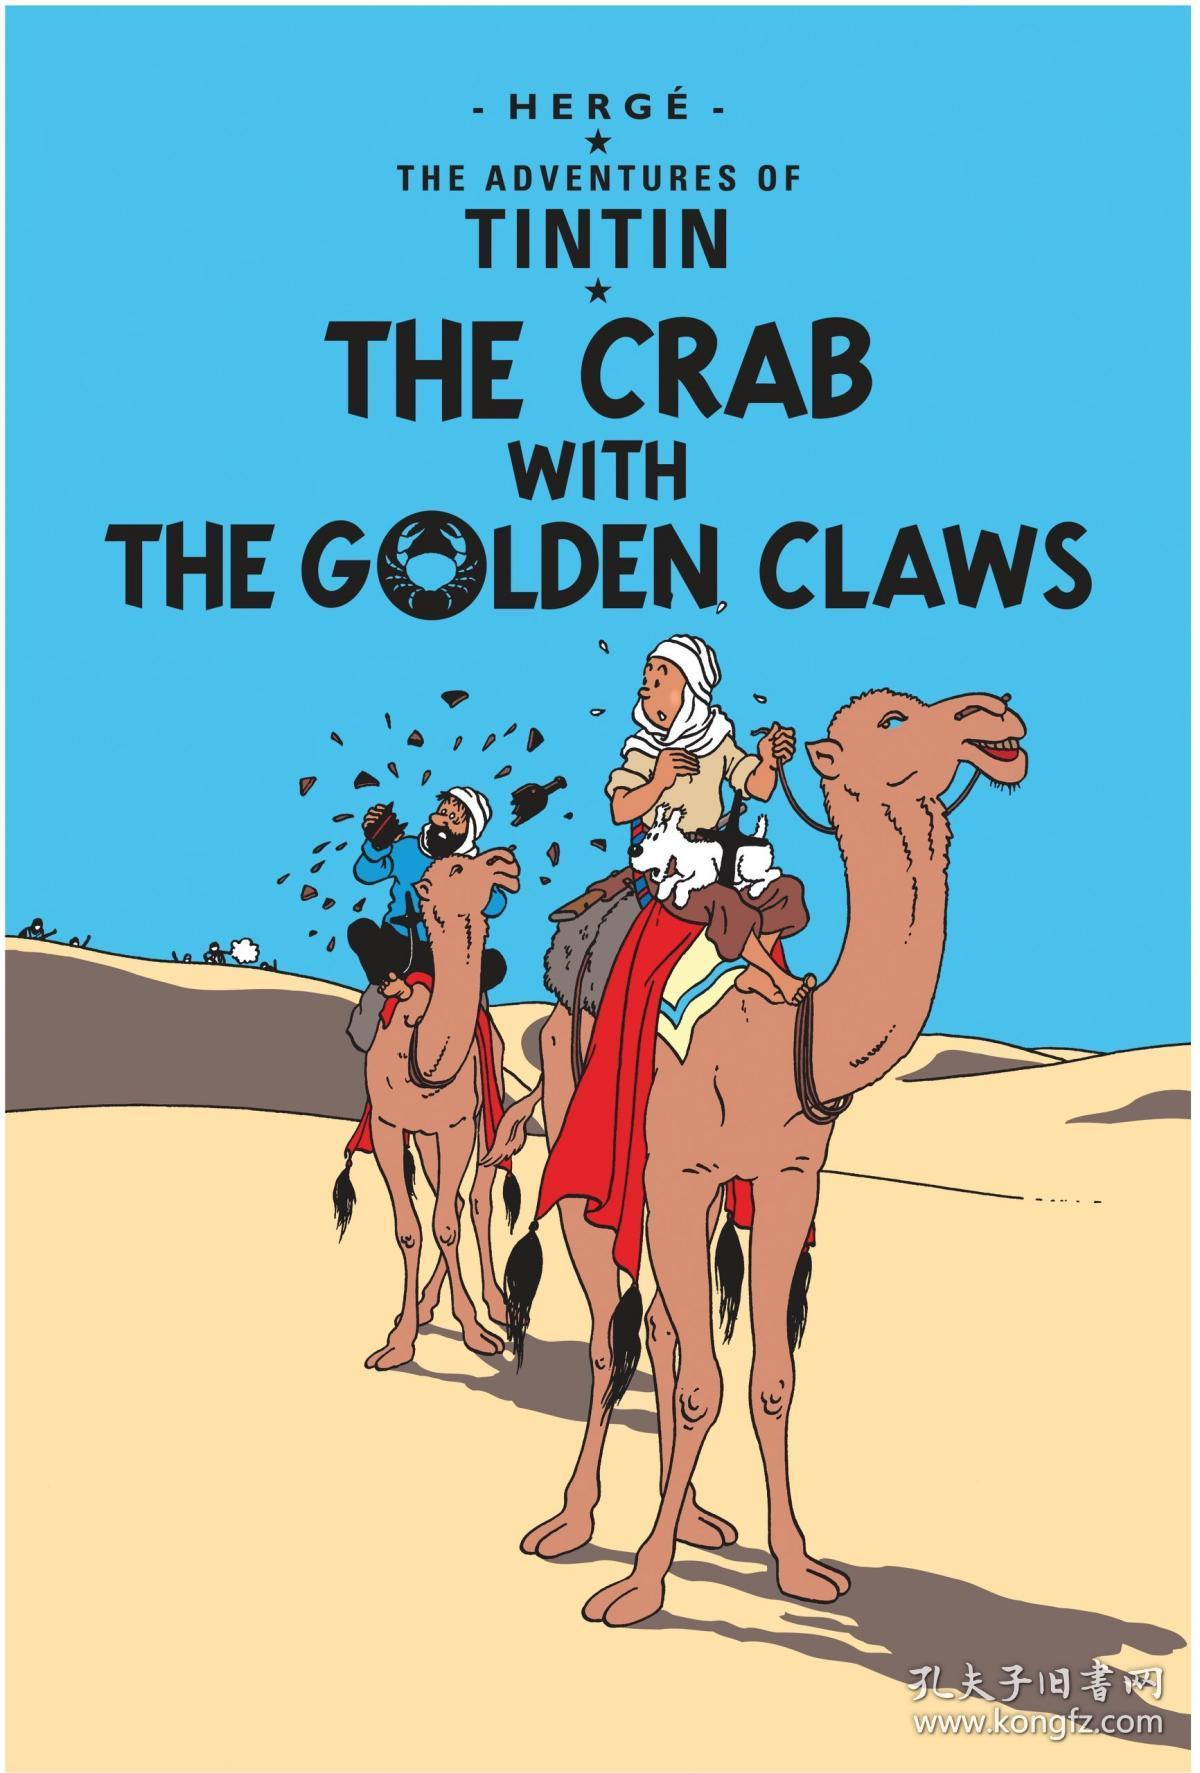 Adventures Of Tintin Crab With The Golden Claws丁丁历险记 蟹金爪